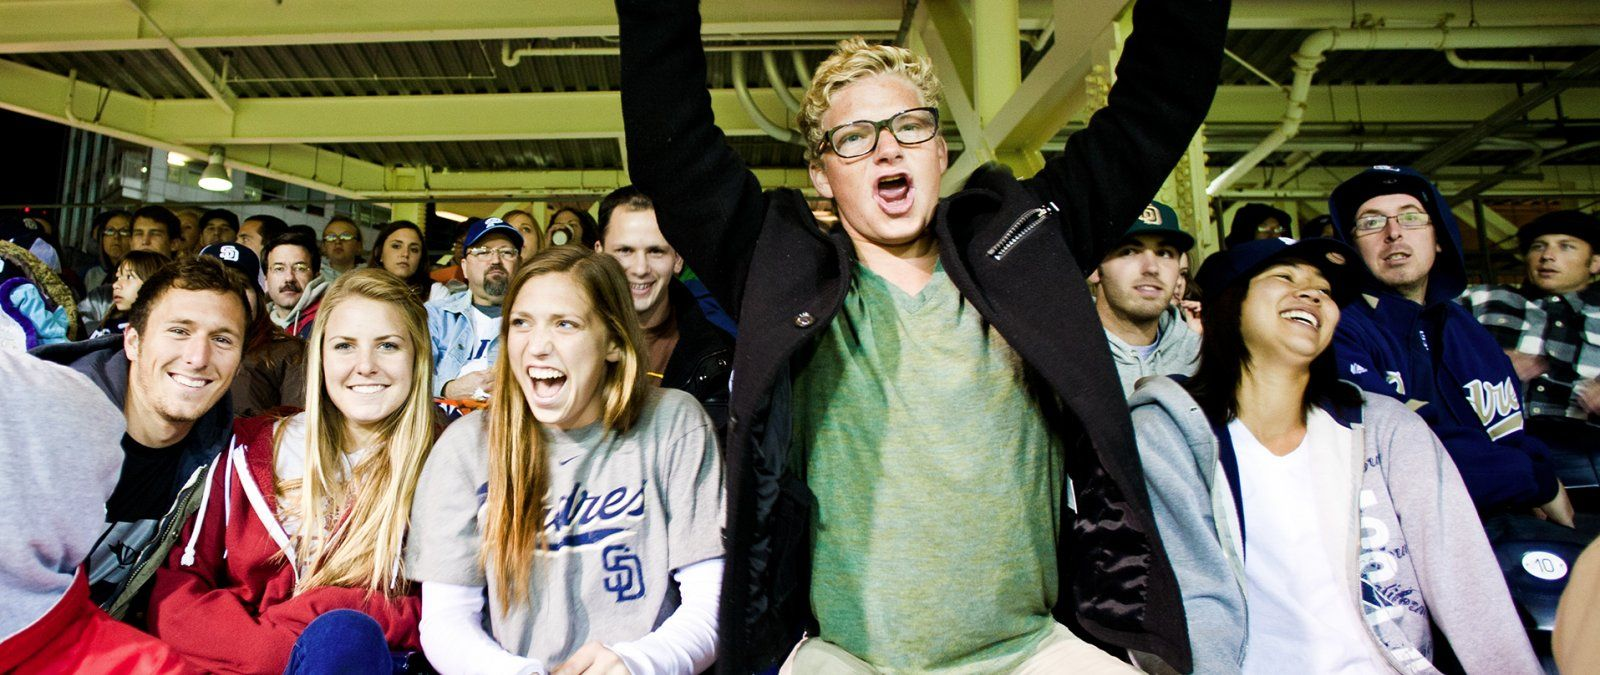 Transfer student scream for the Padres at Petco Park